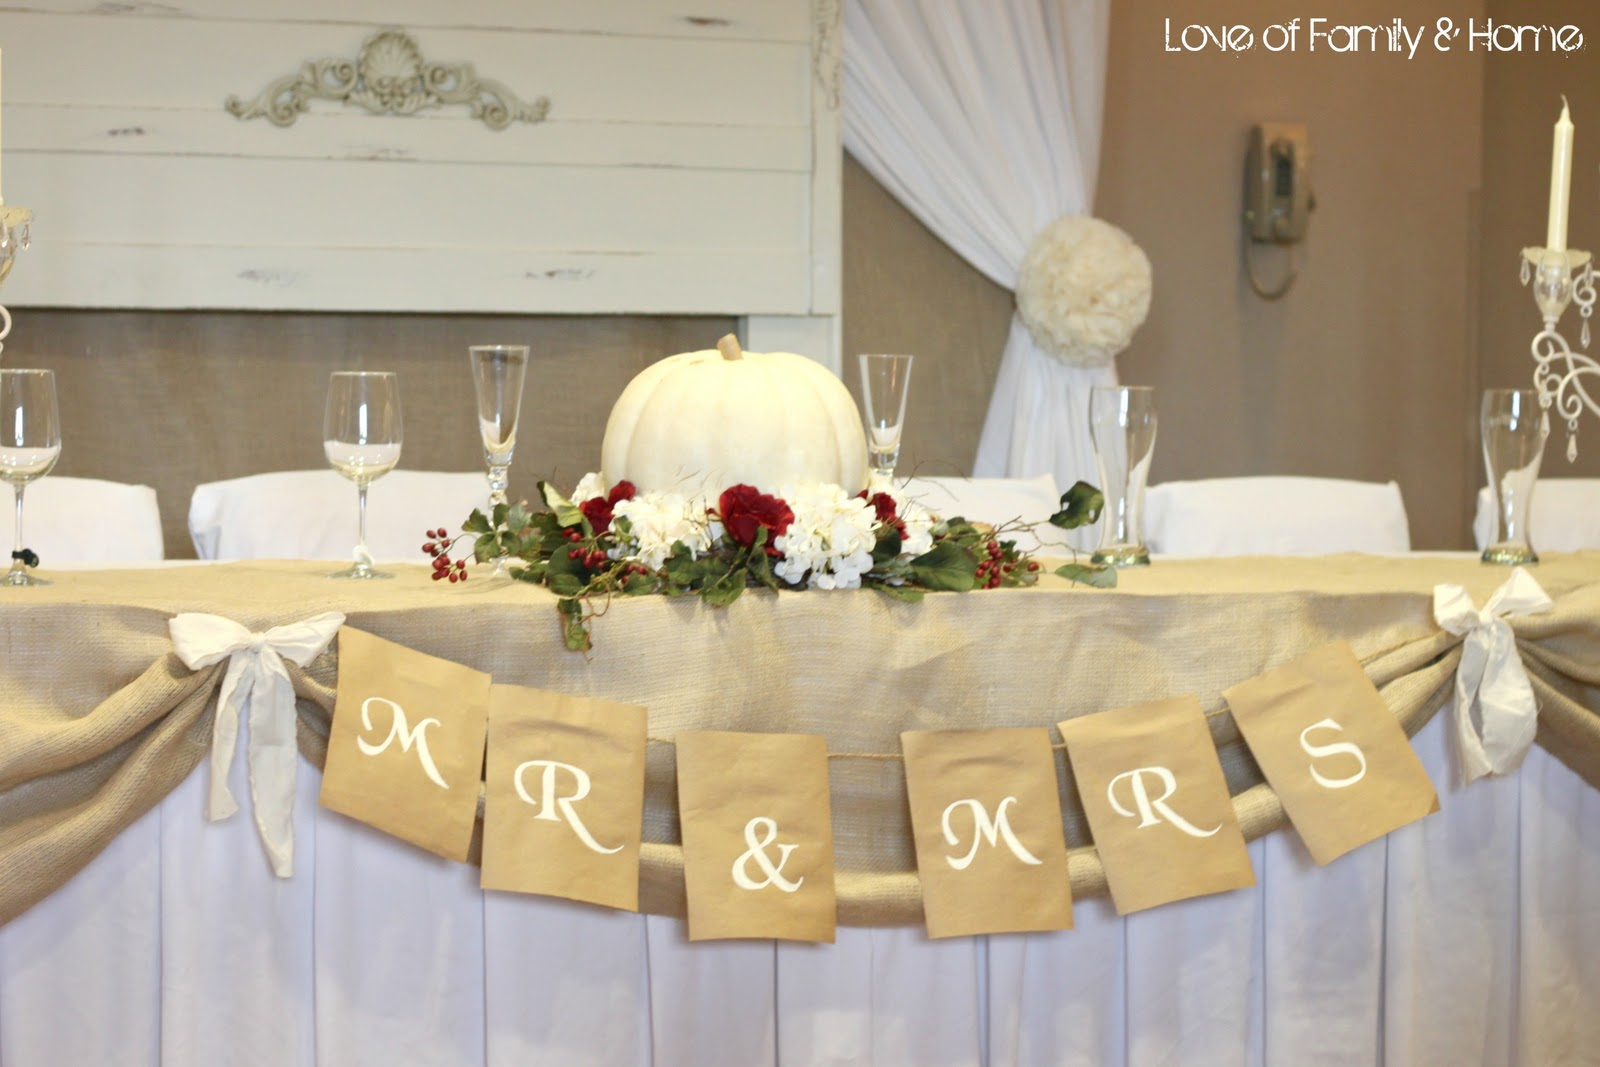 Diy wedding word banners love of family home diy wedding word banners solutioingenieria Images